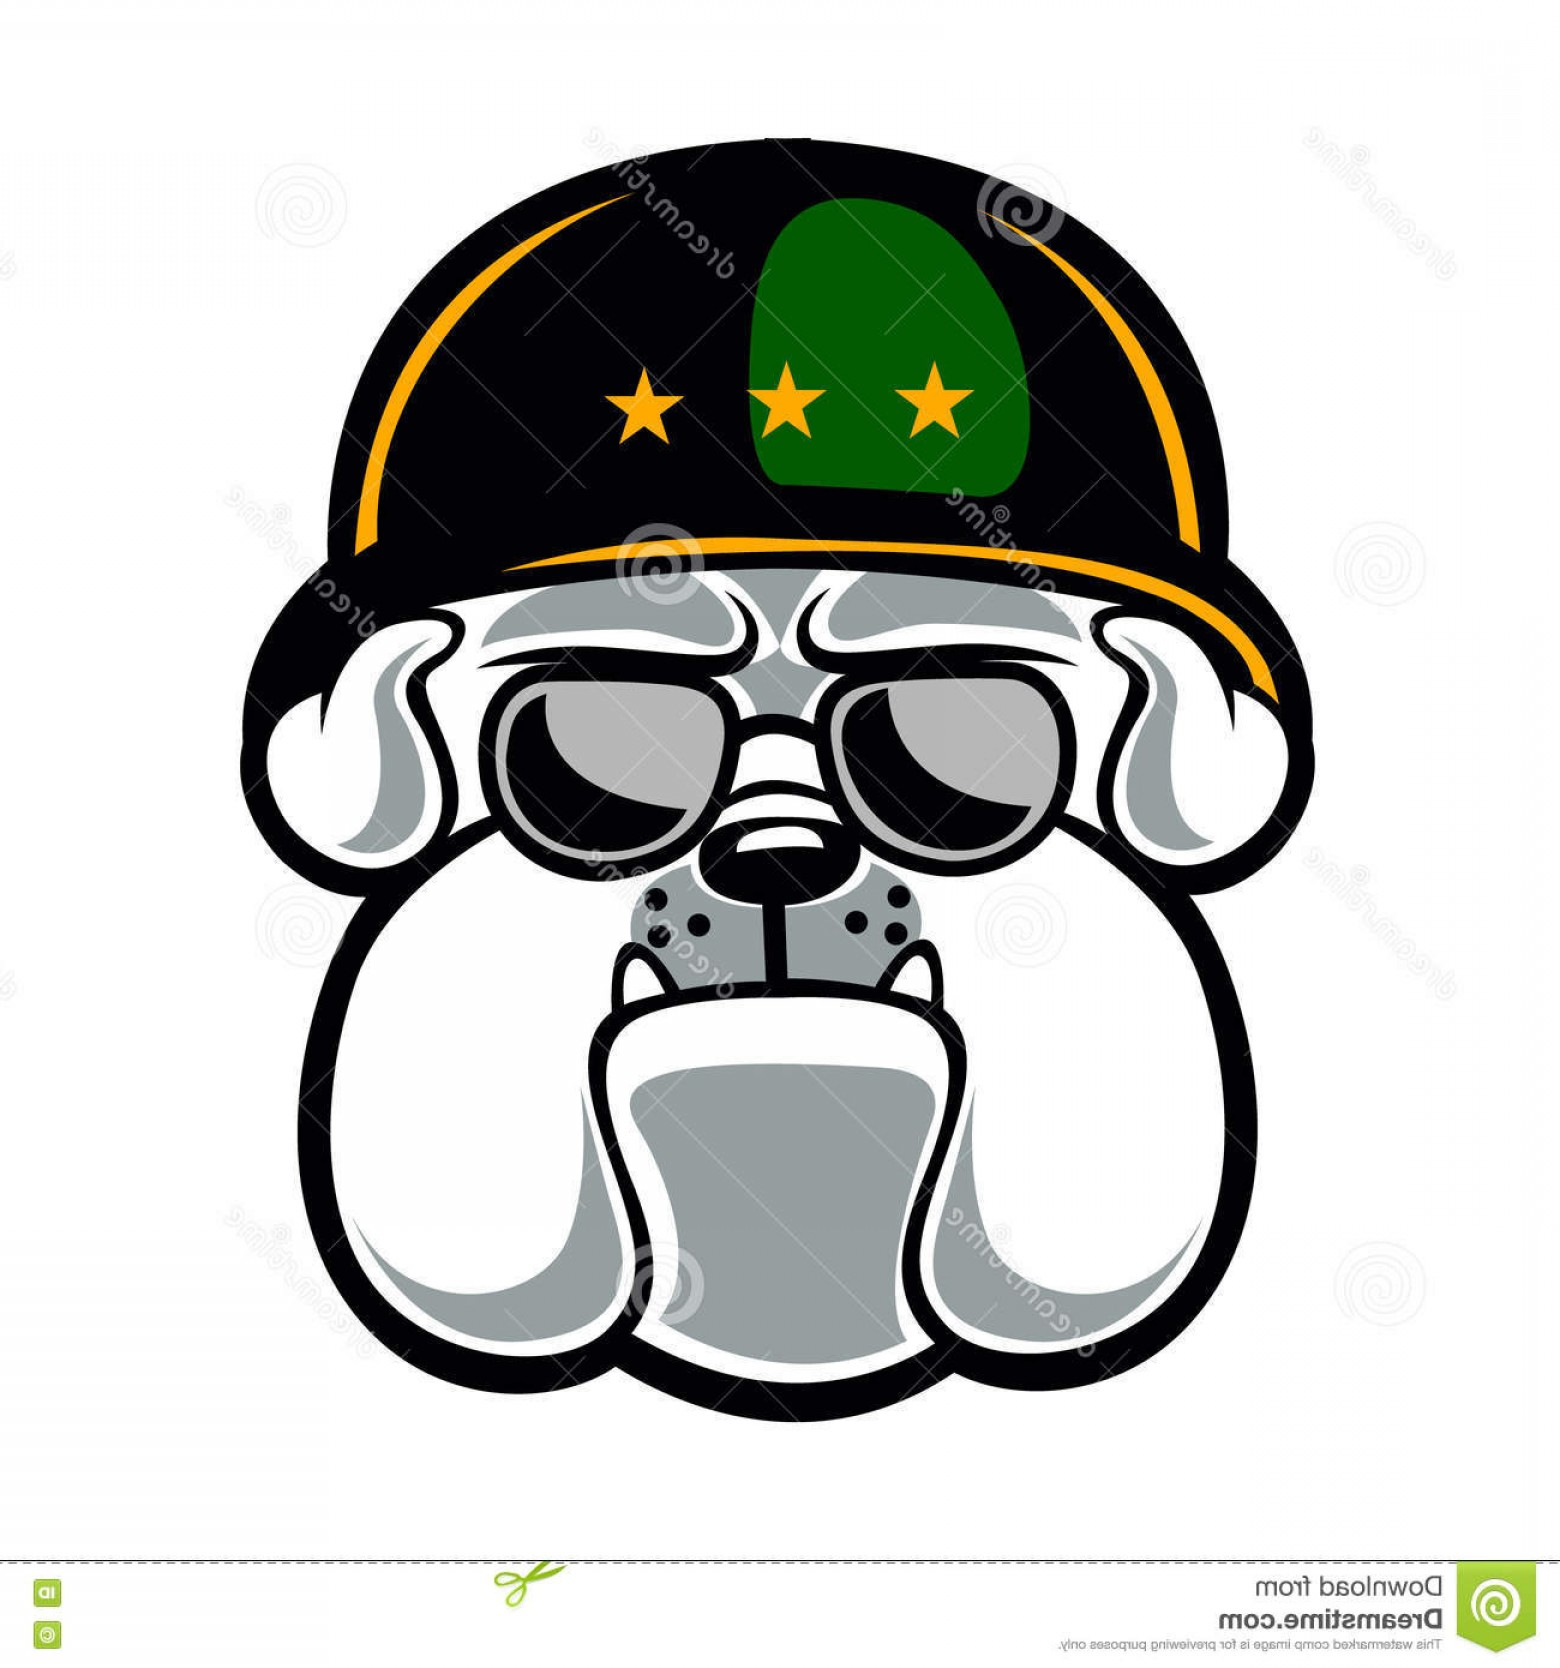 Marine Bulldog Logo In Vector: Stock Illustration Bulldog Army Mascot Cartoon Illustration Image